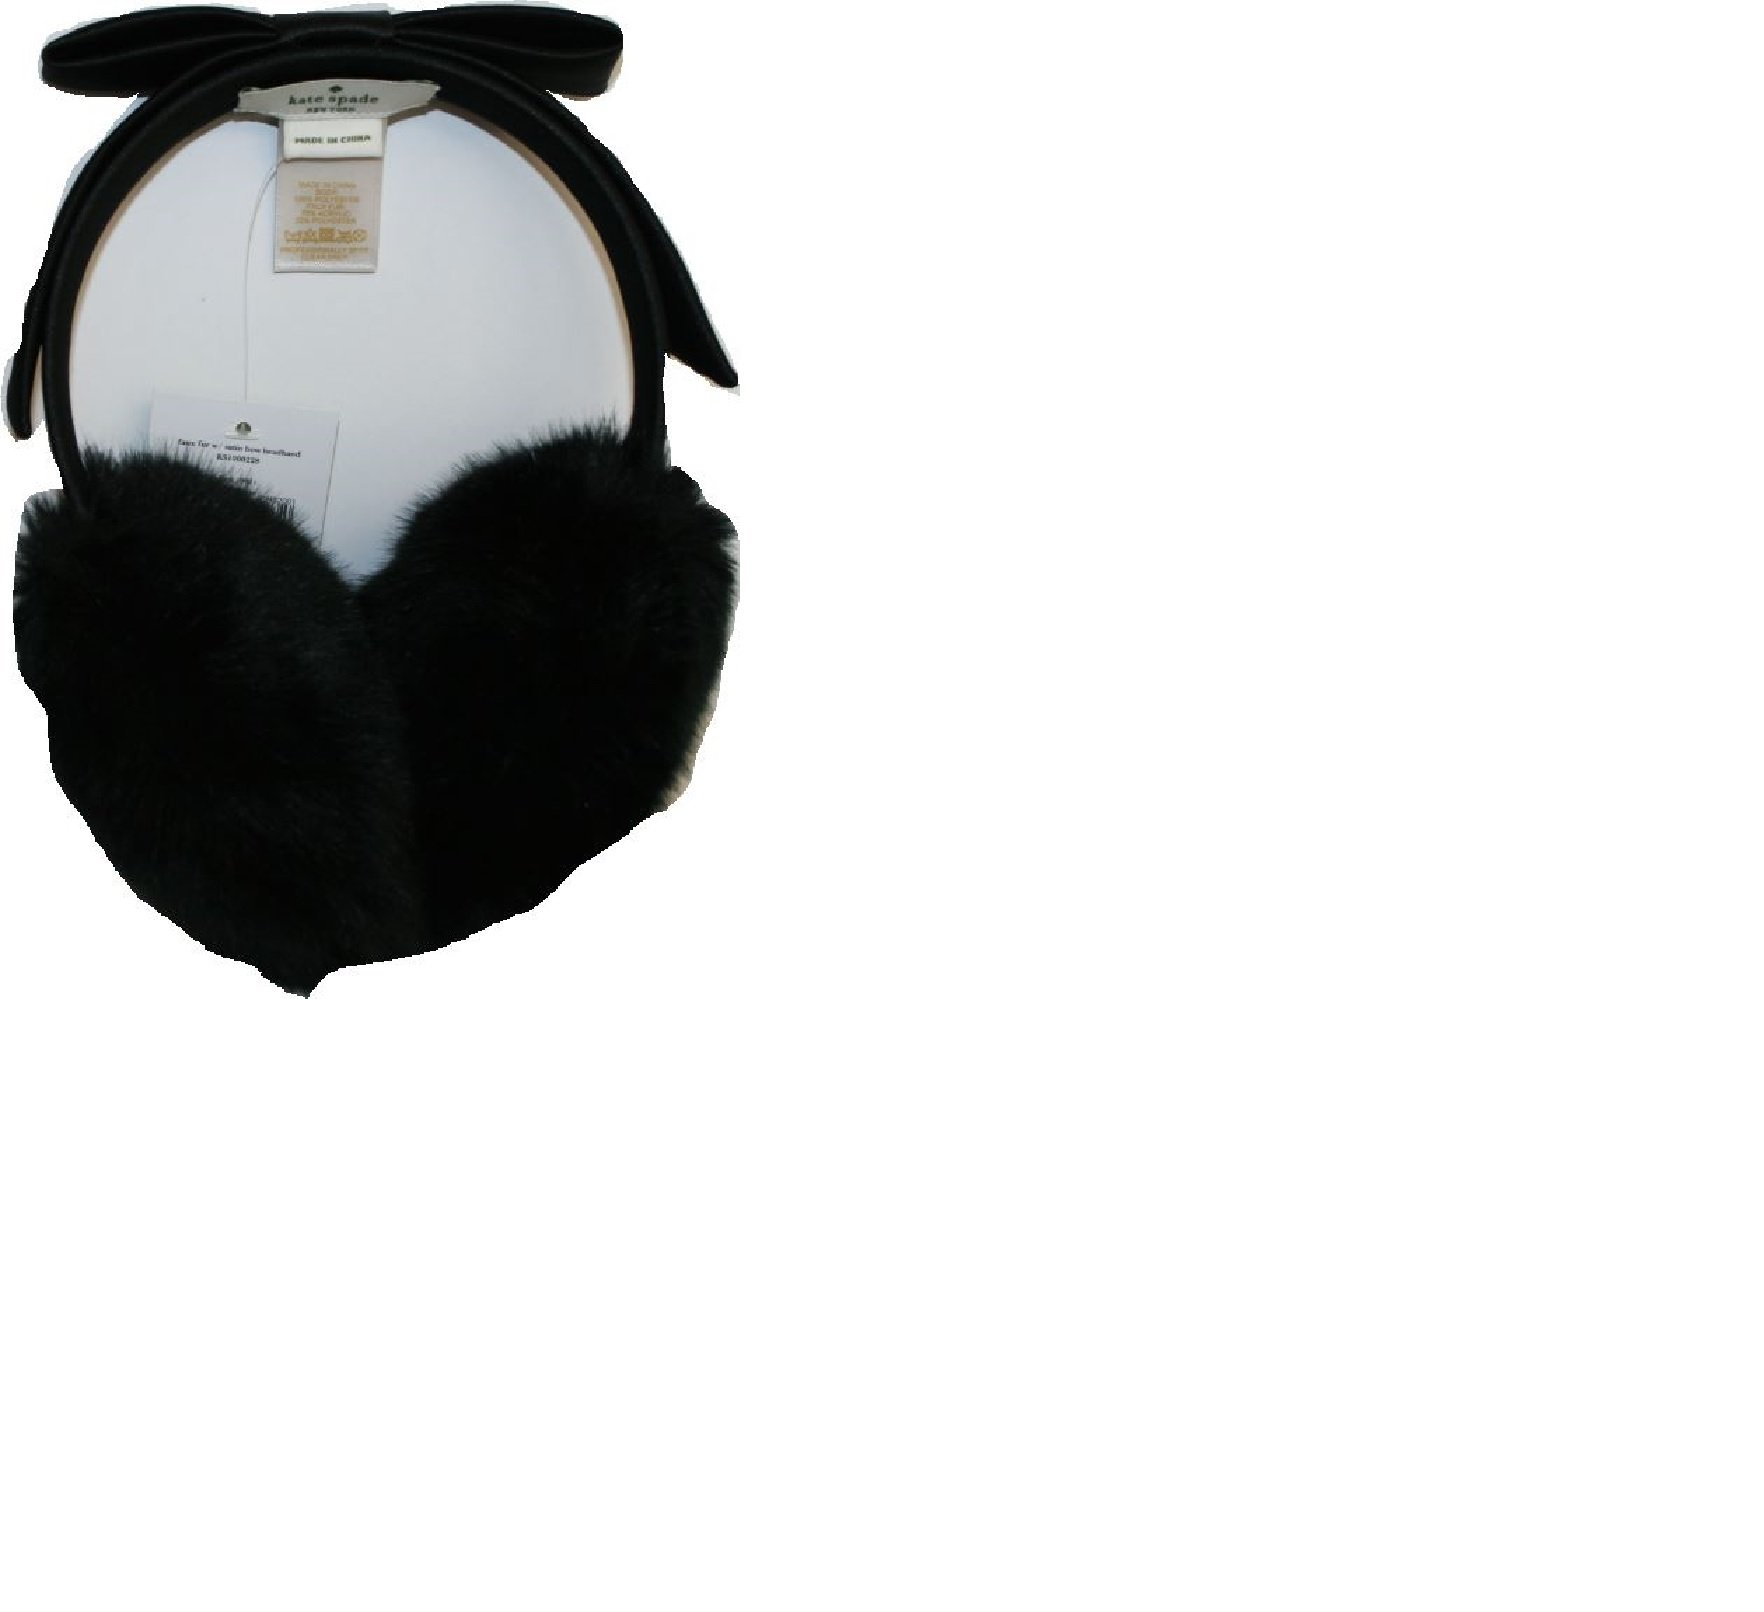 Kate Spade Black Faux Fur Earmuffs With Satin Bow Perfect Gift